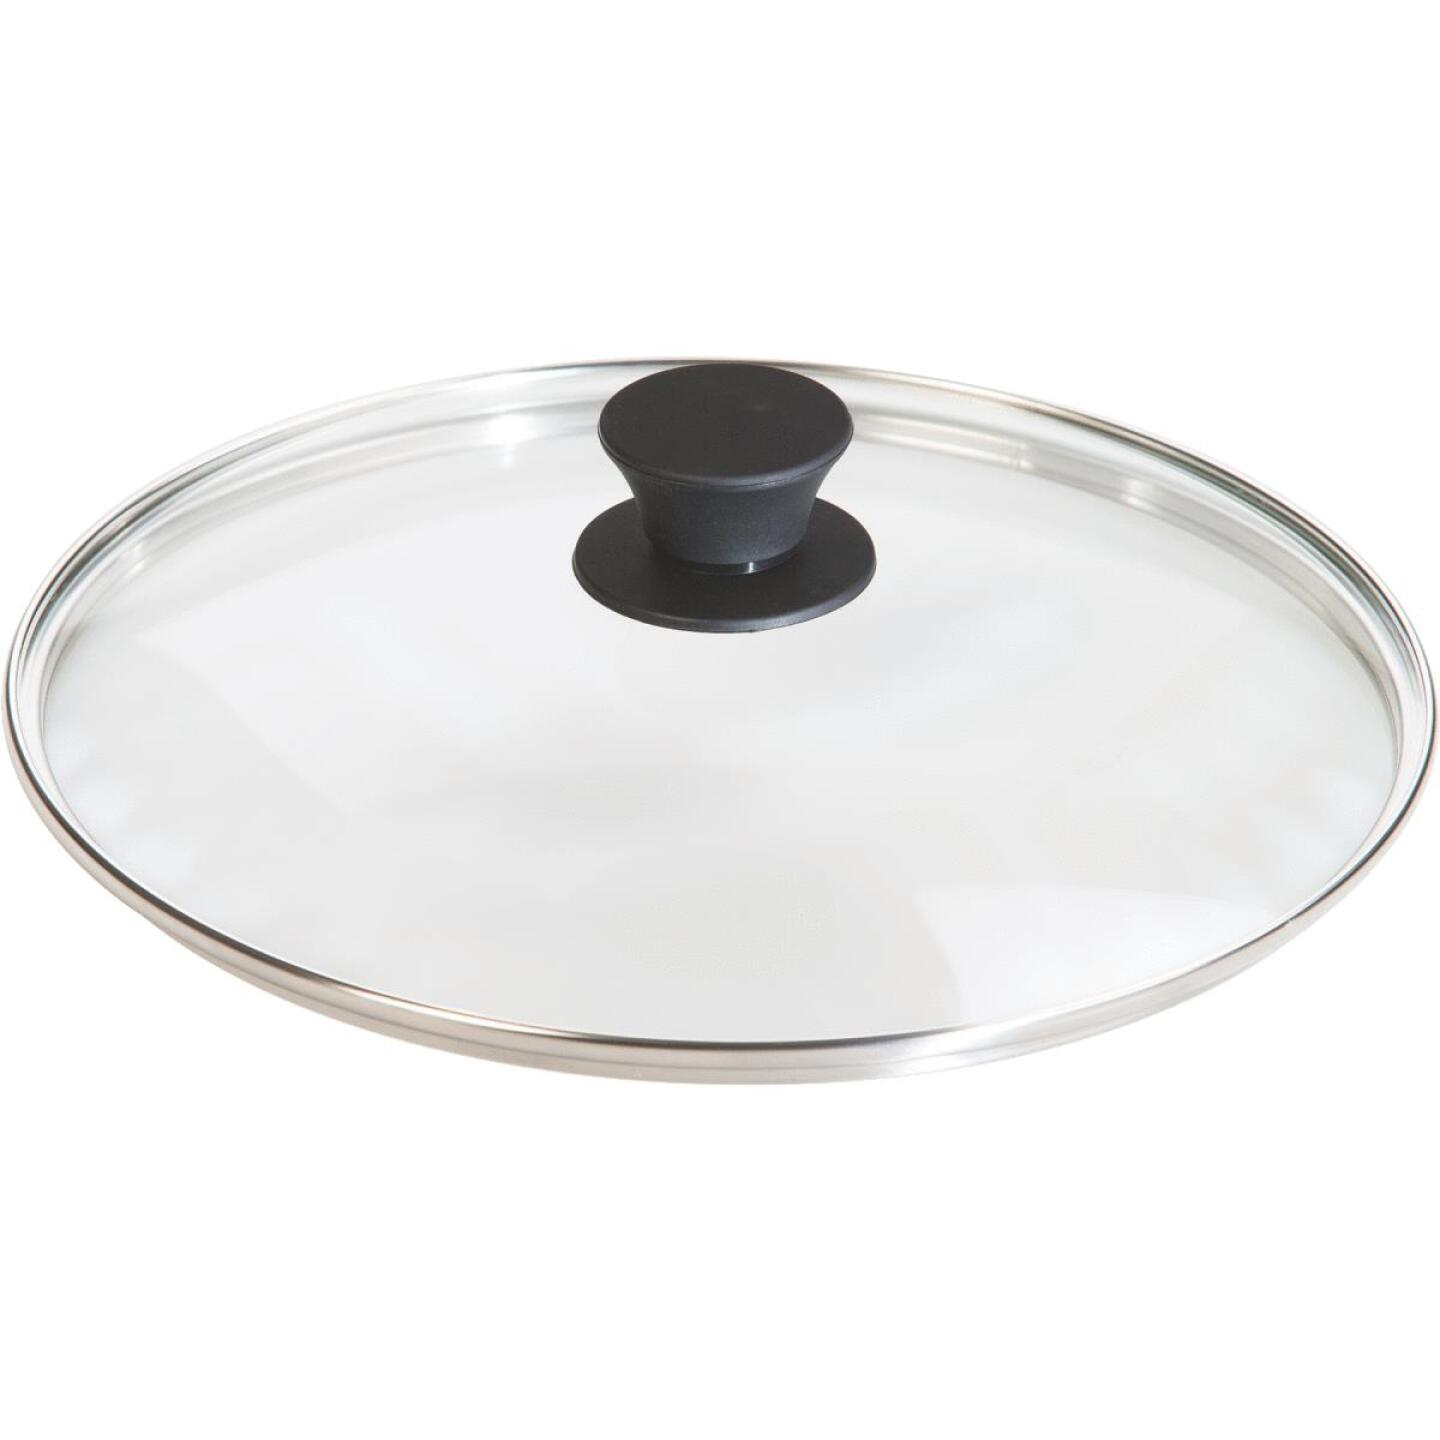 Lodge 10.25 In. Tempered Glass Glass Lid Image 1